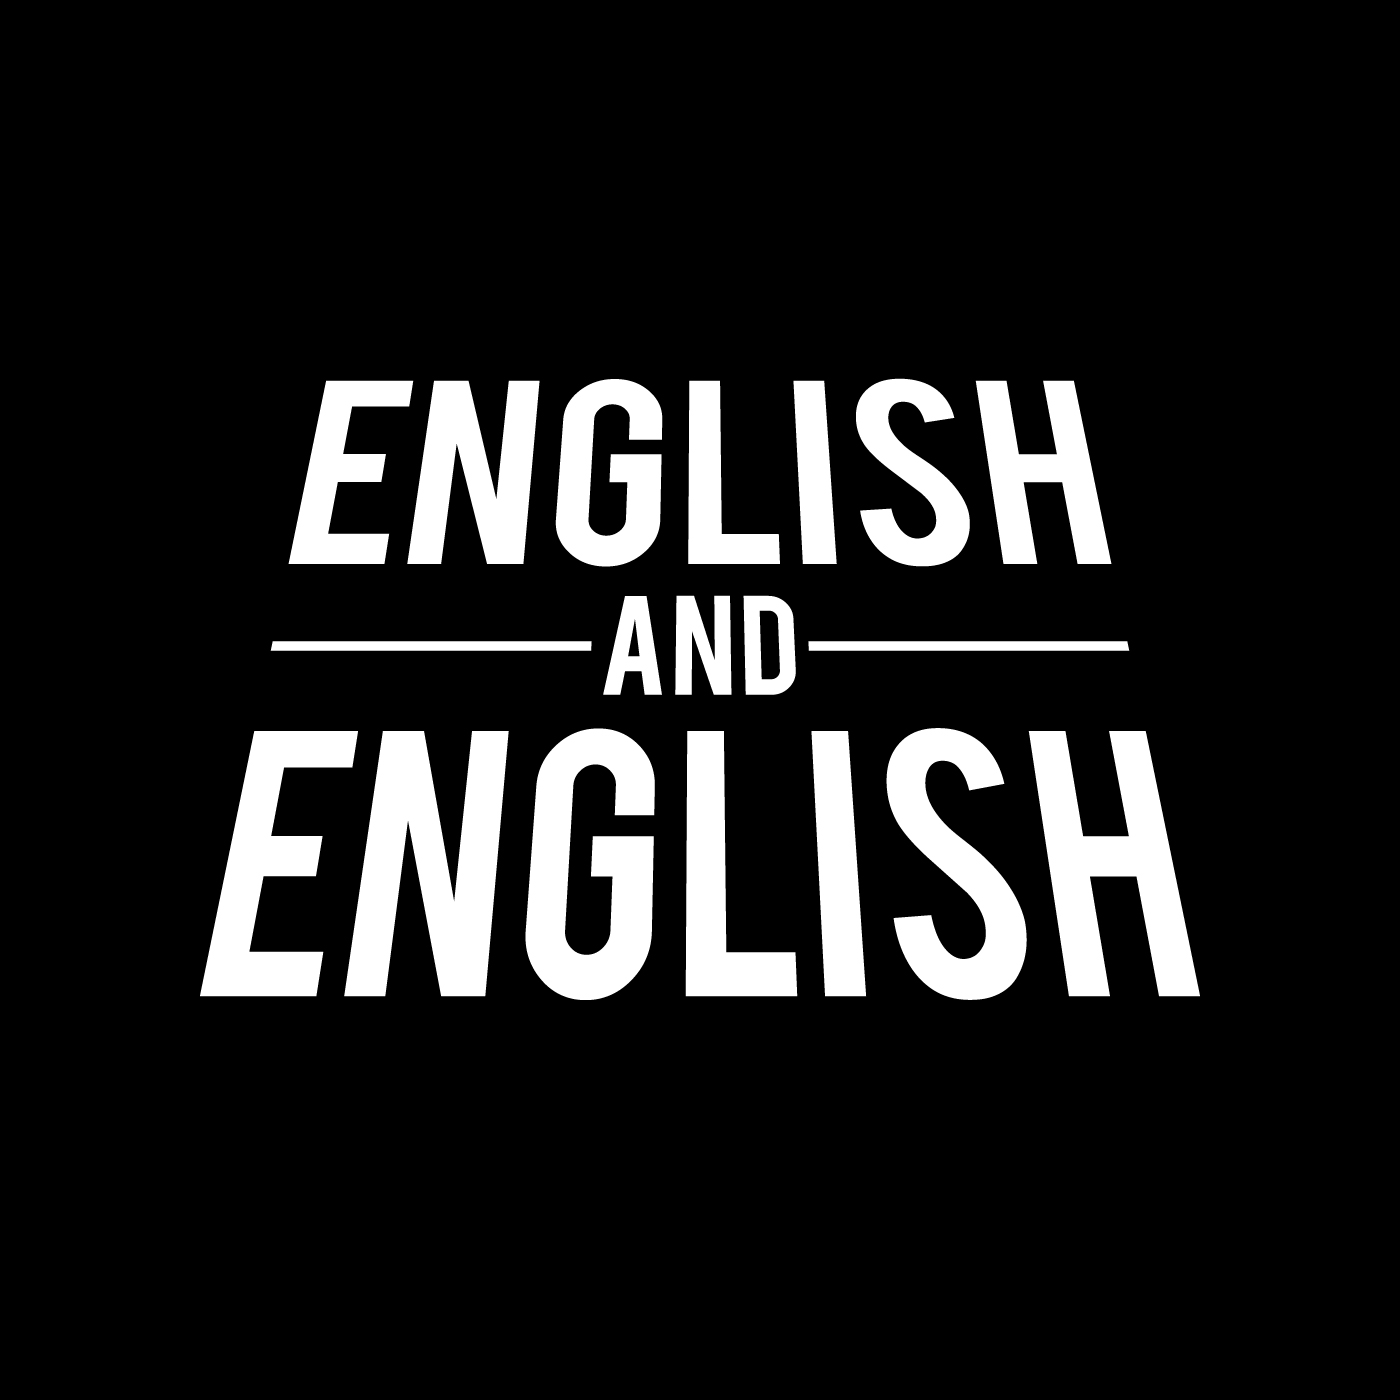 English and English Podcast